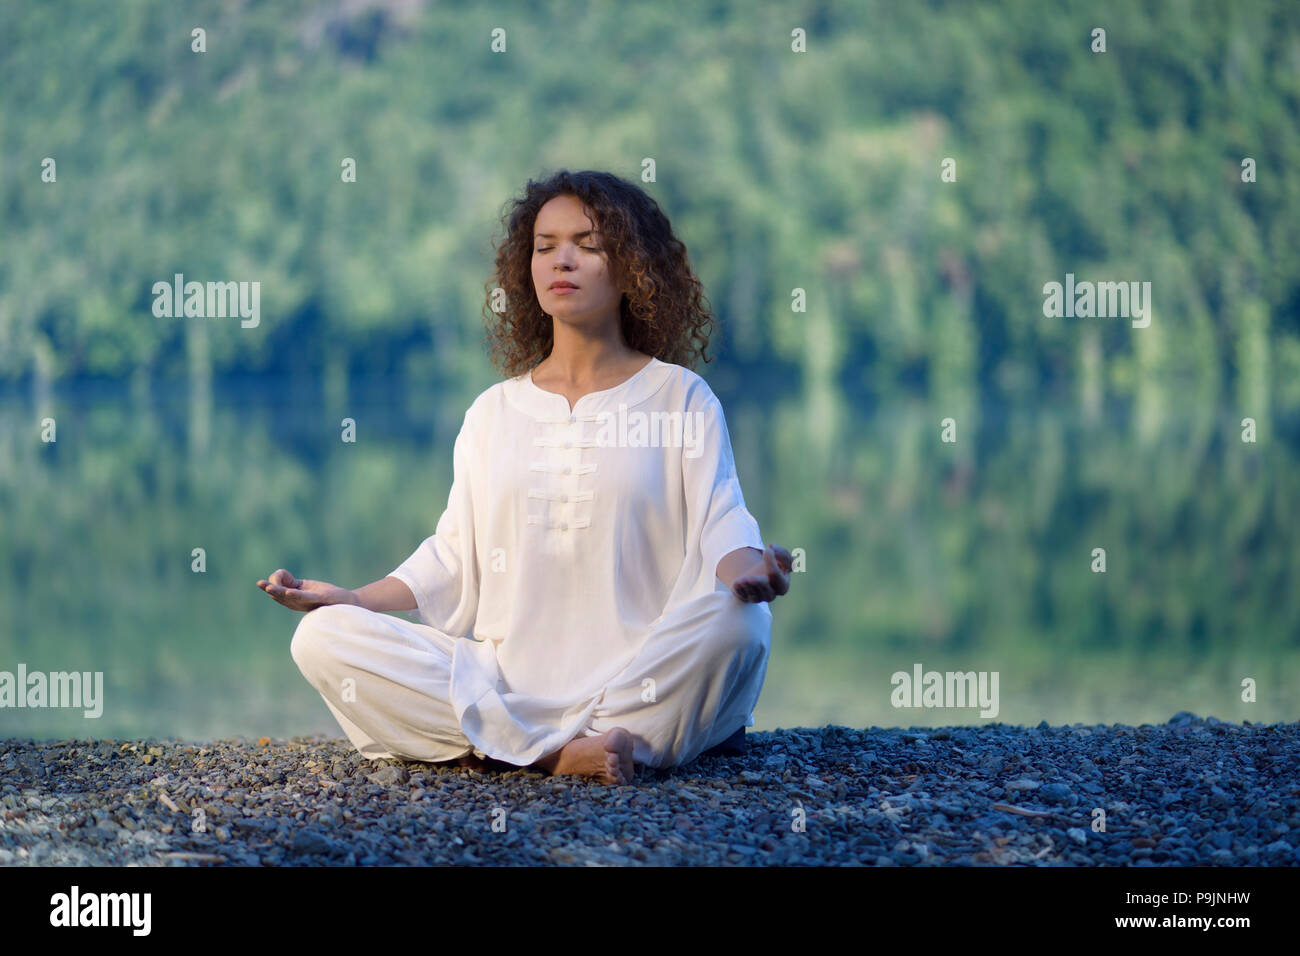 Young woman in white outfit meditating by the lake in the nature - Stock Image